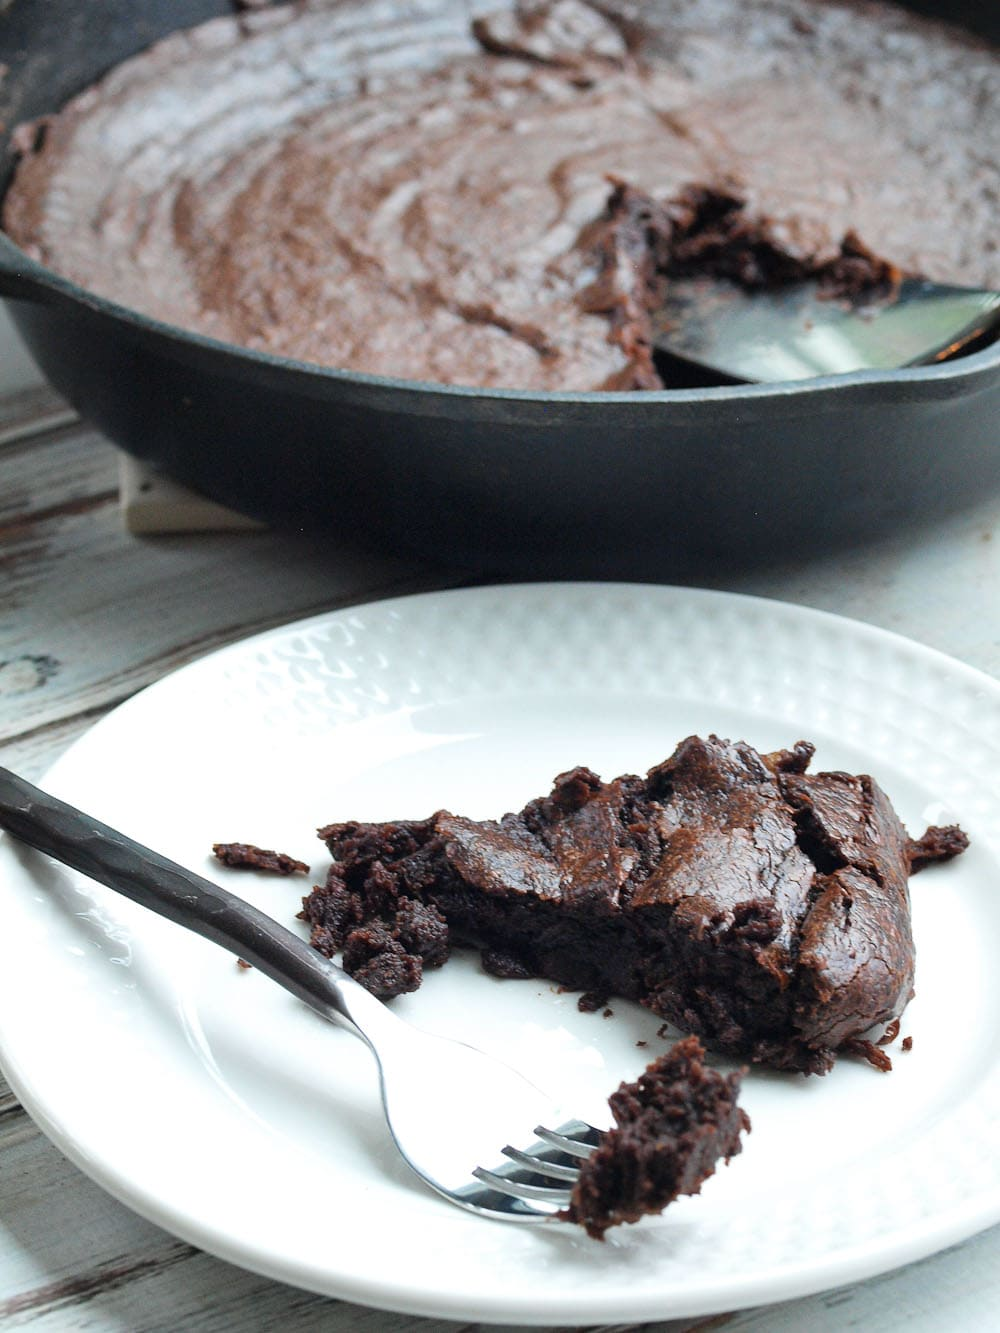 Chocolate Fudge Banana Skillet Cake Recipe You Can Make This Healthy From